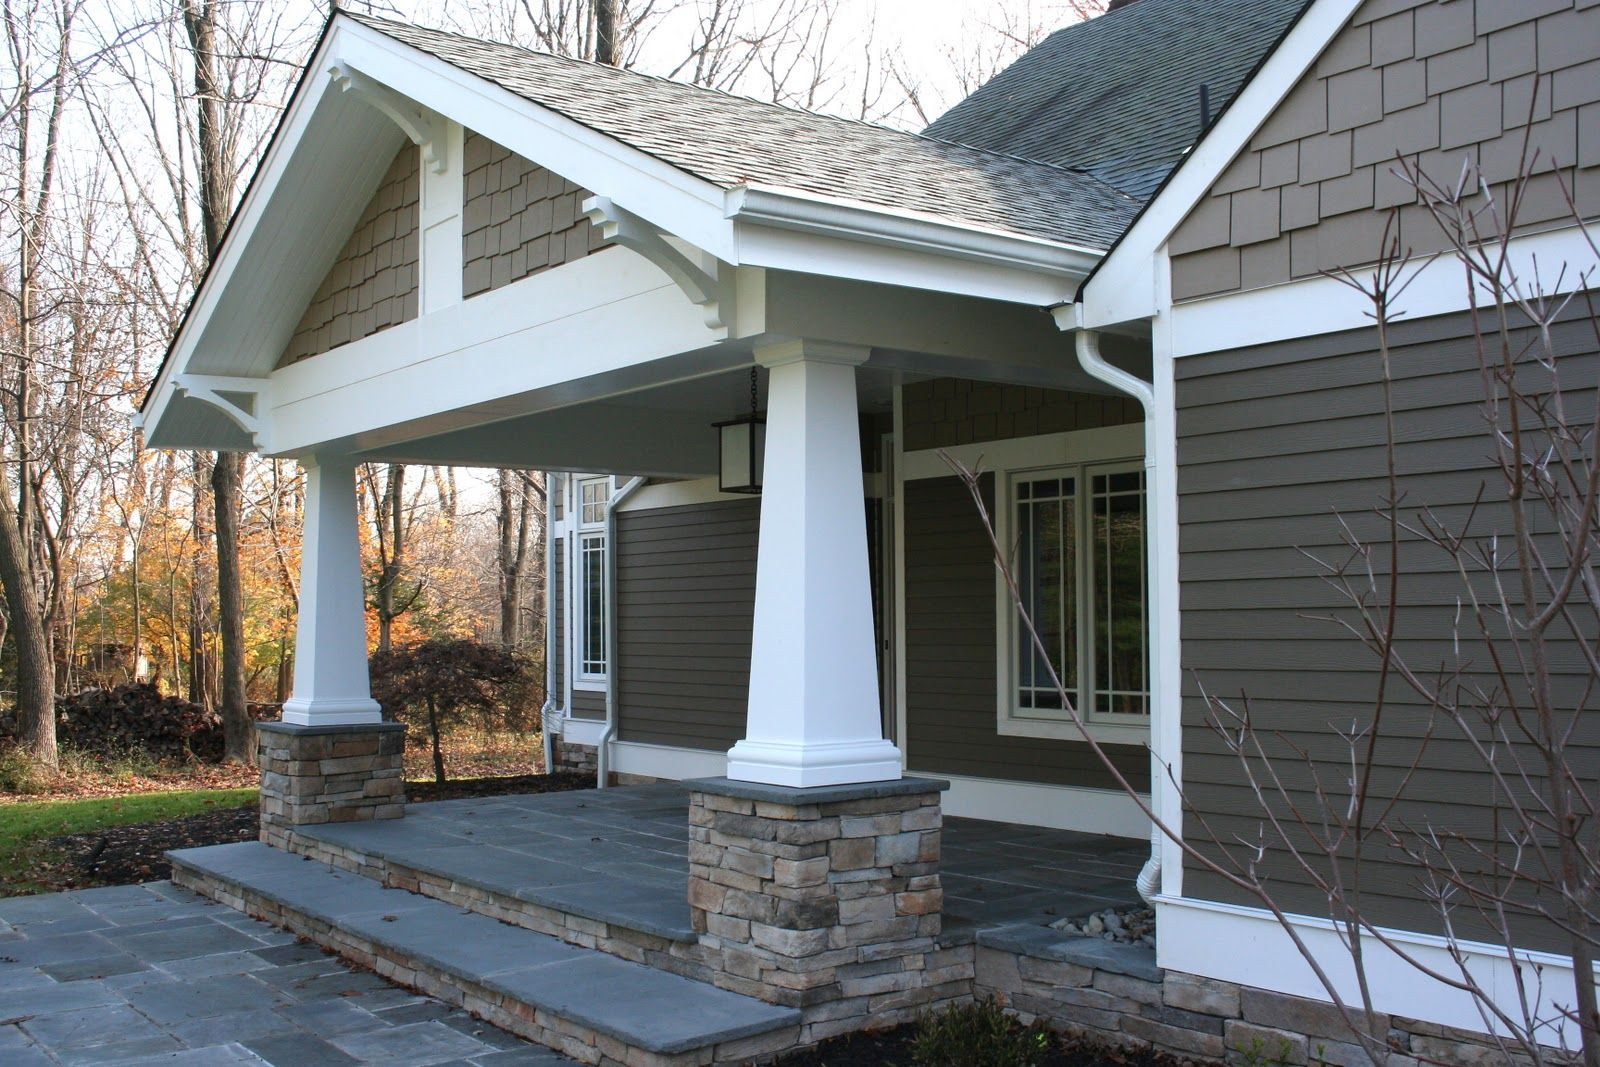 The Porch Is The Most Dramatic With Tapered Craftsman